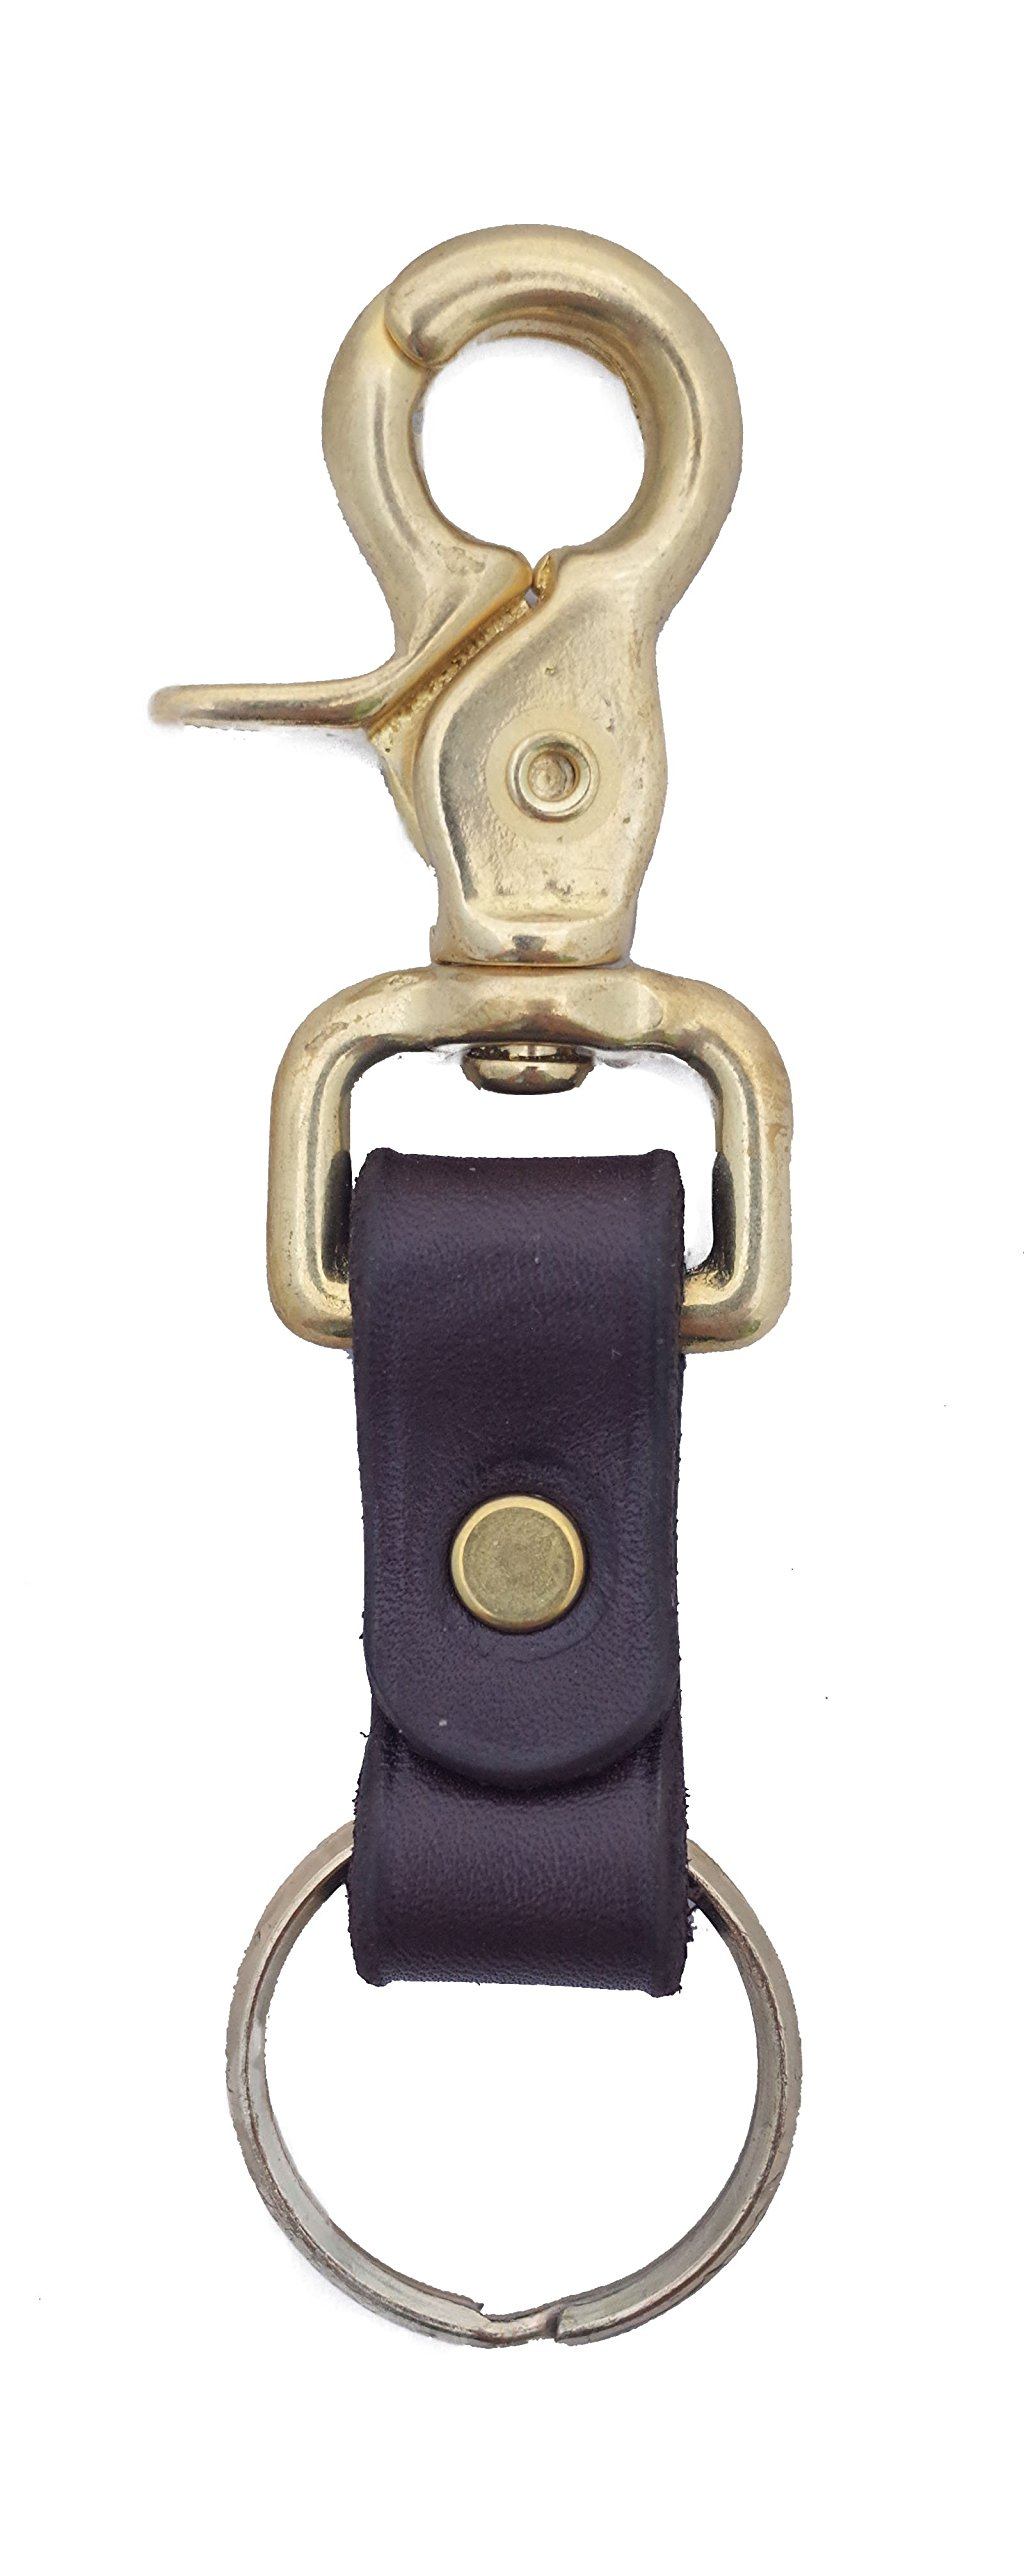 Genuine Leather Key Chain Ring Fob Solid Brass Fixures, Attaches to Belt Loops, Made in the USA By Amish Craftsman - Great Gift for Dad, Uncle, or Grandpa